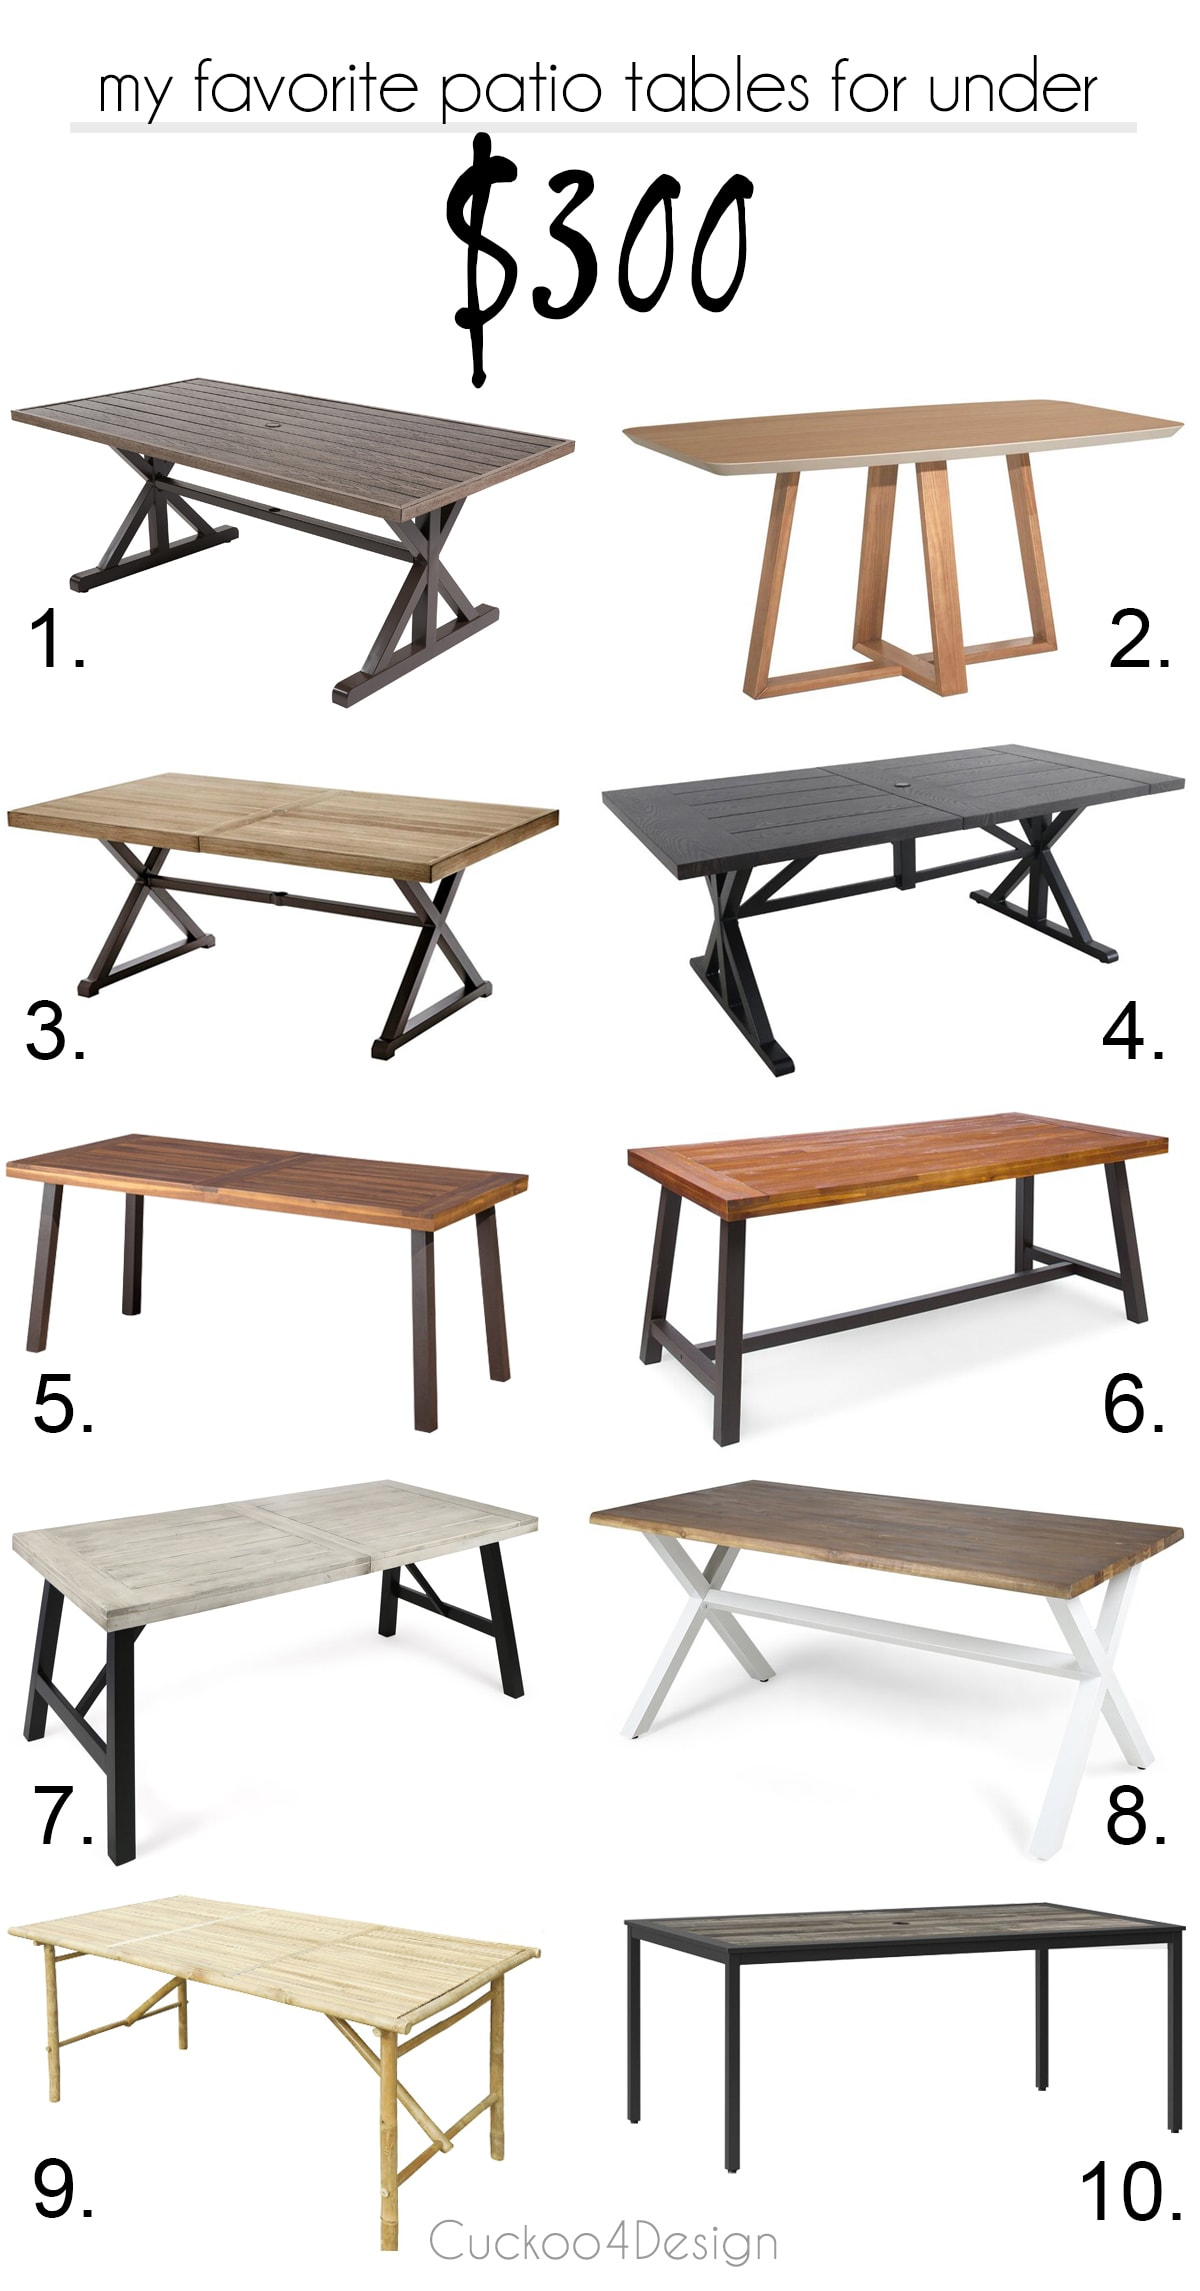 cheap patio tables for under $300